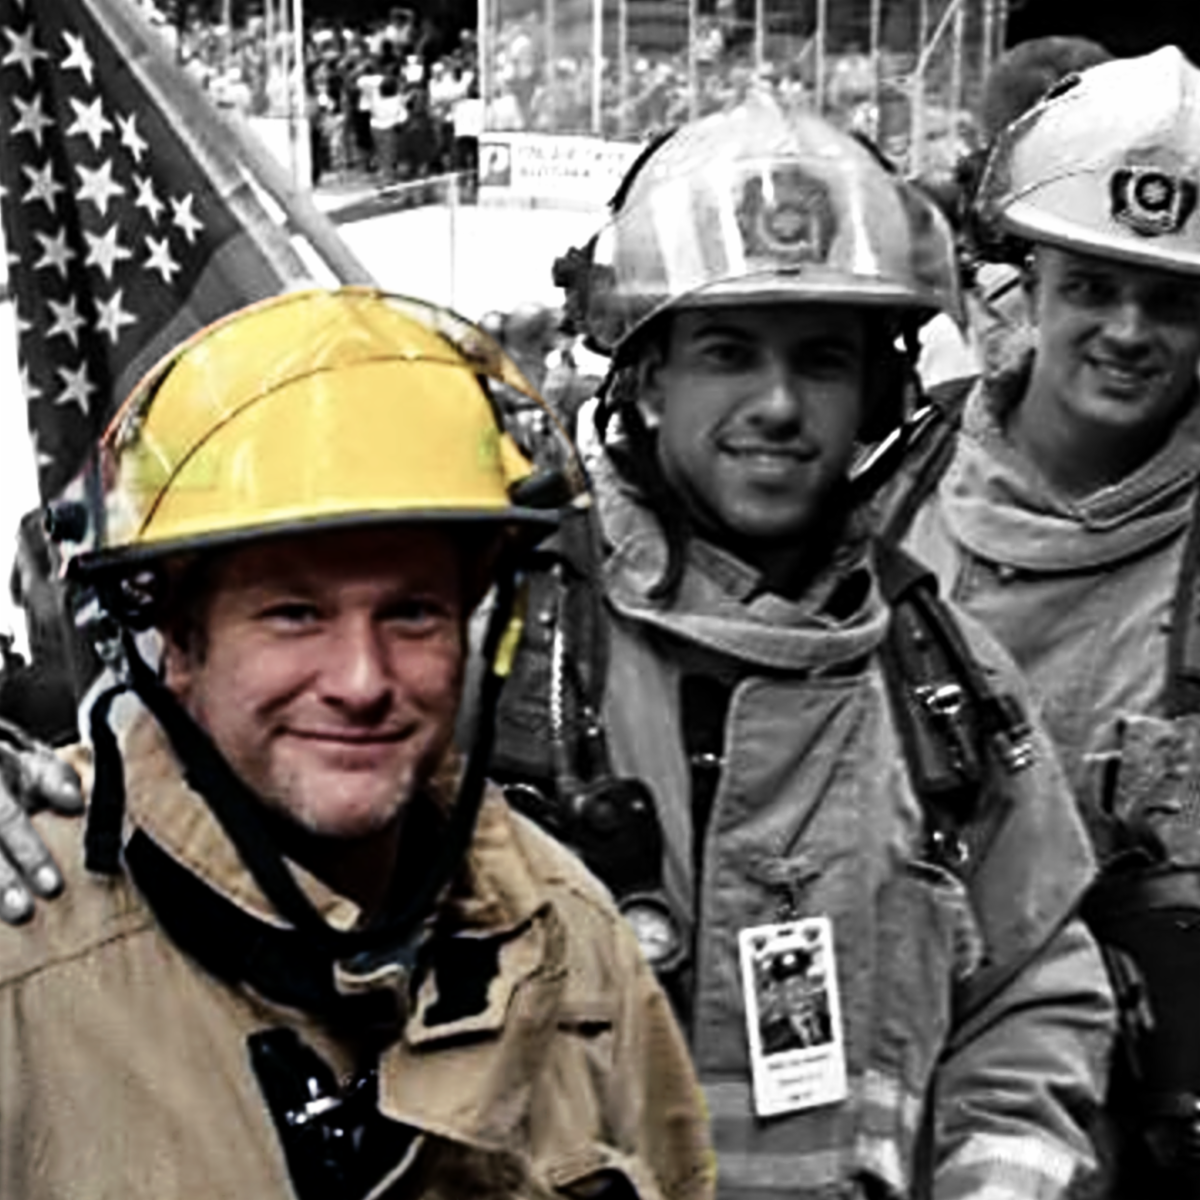 Steve Snyder-firefighter pic-edited.png